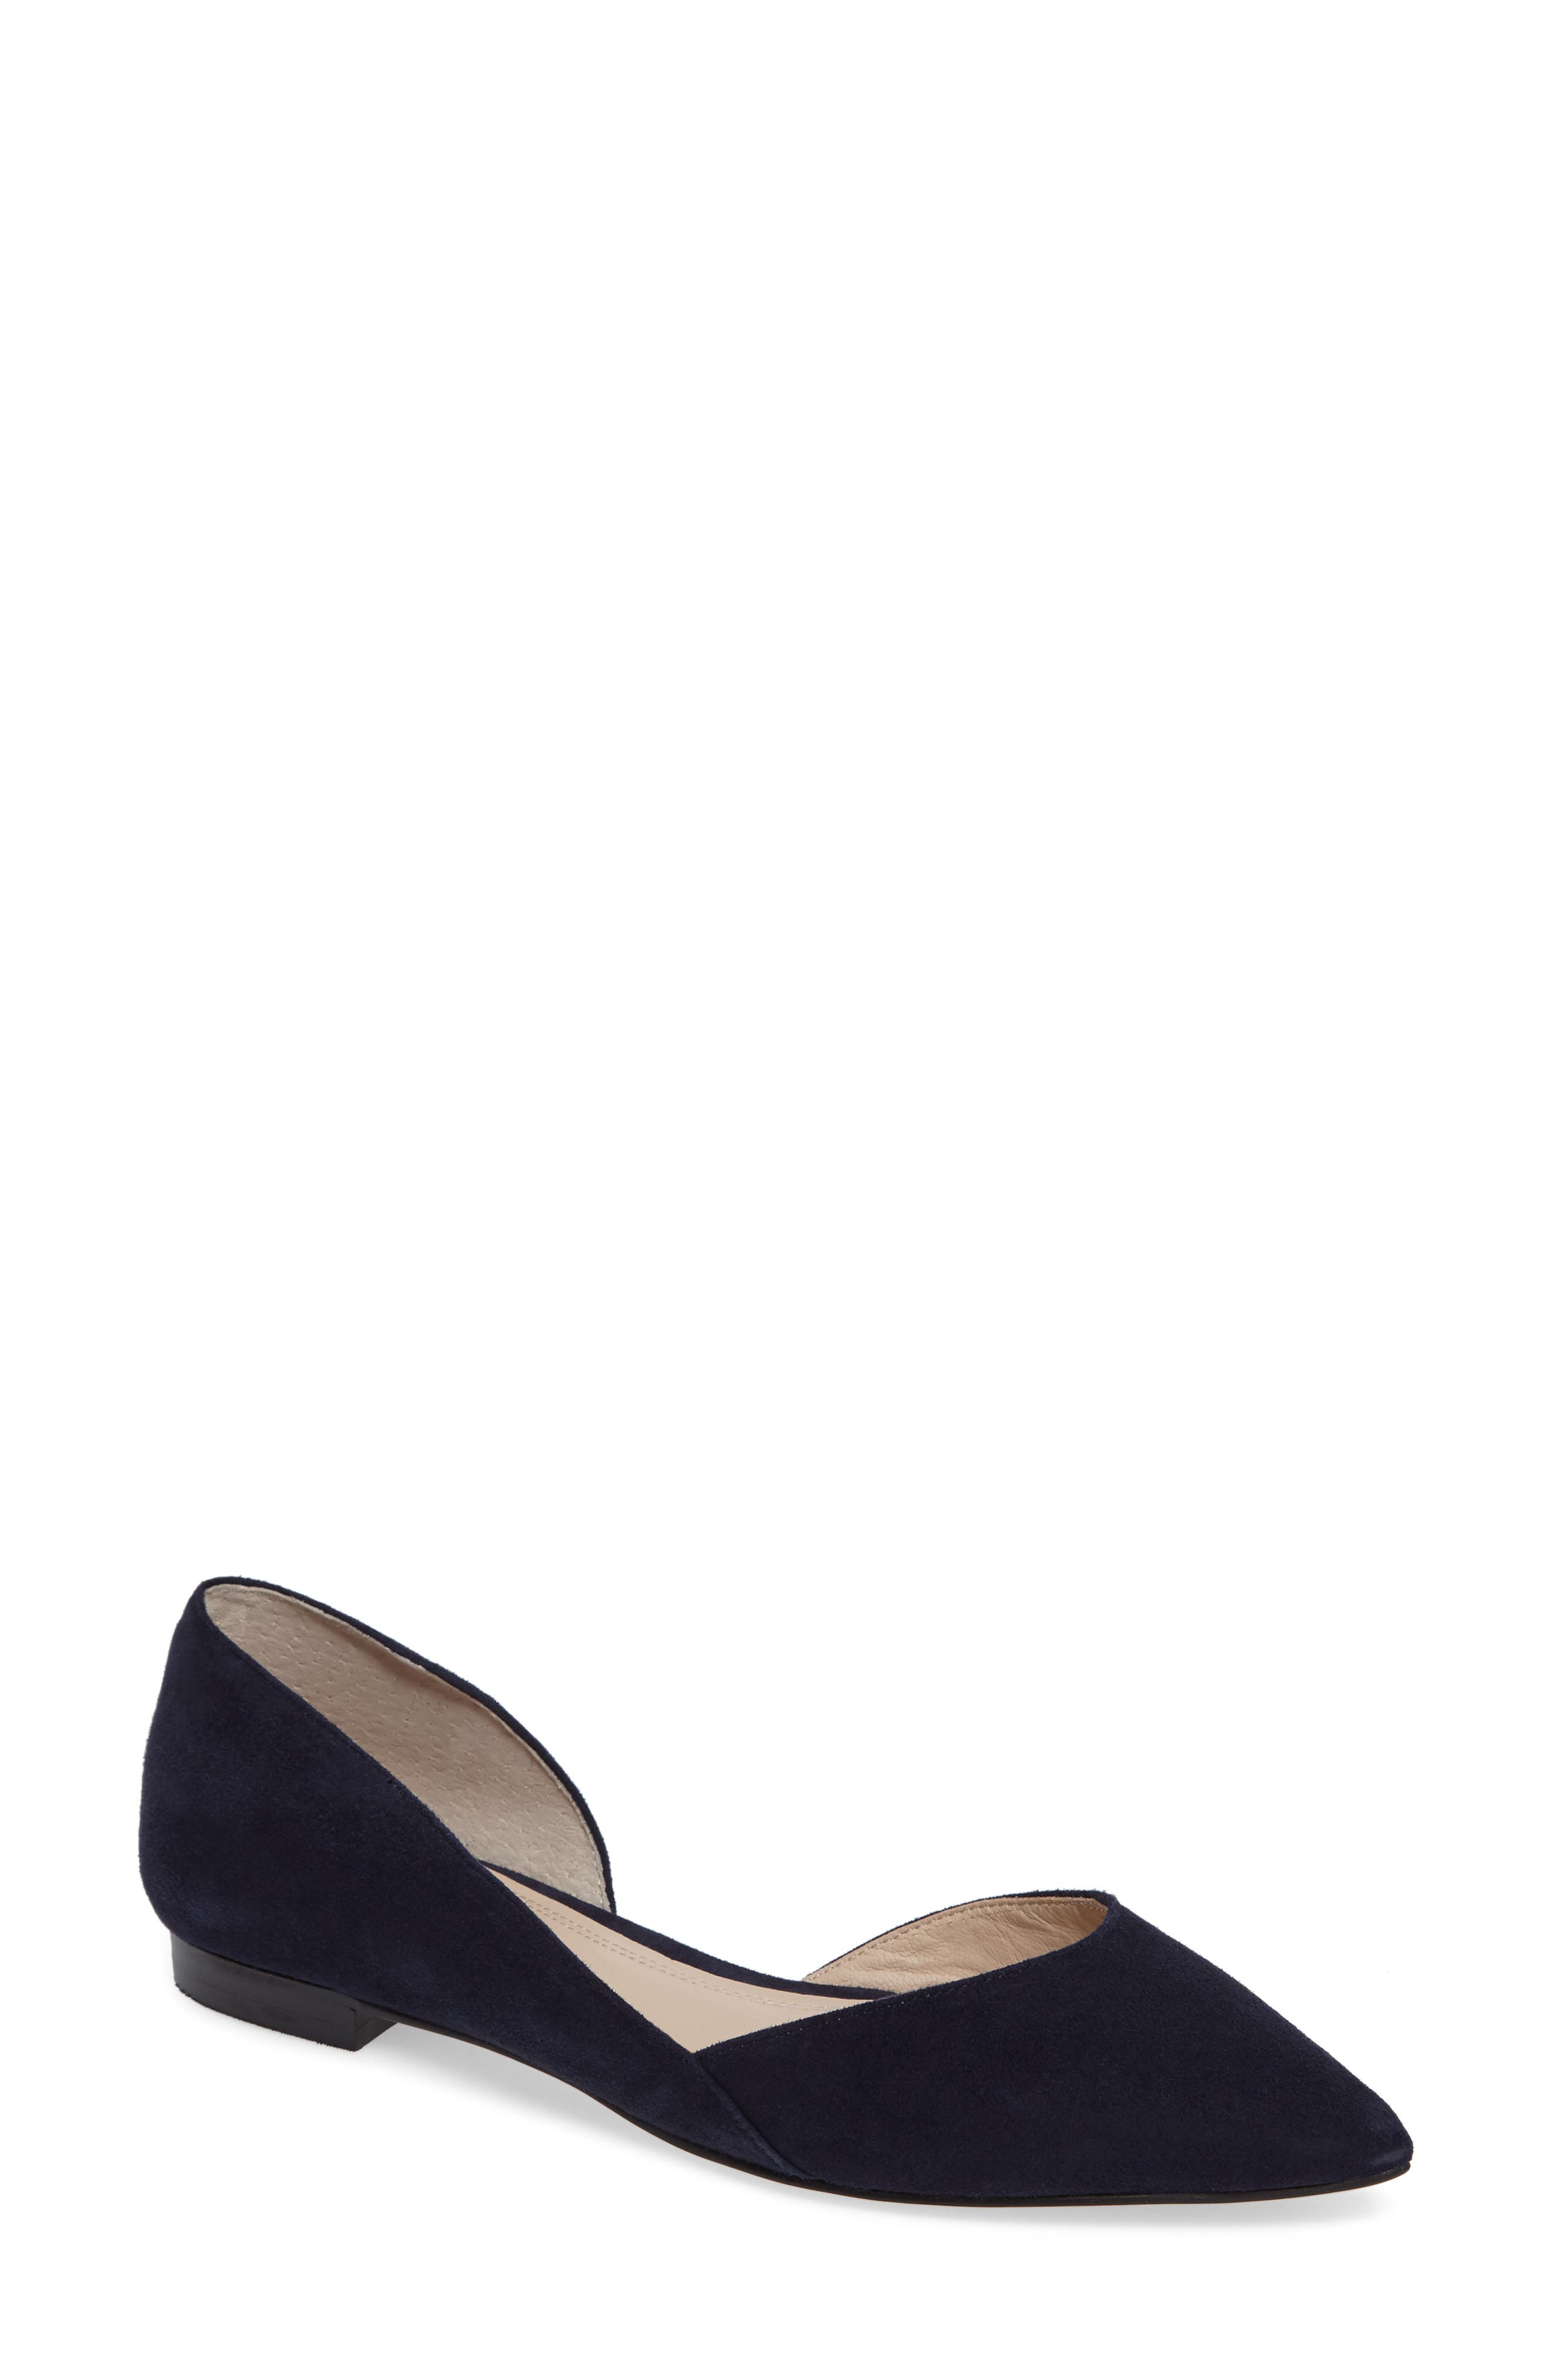 Alternate Image 1 Selected - Marc Fisher LTD 'Sunny' Half d'Orsay Flat (Women)